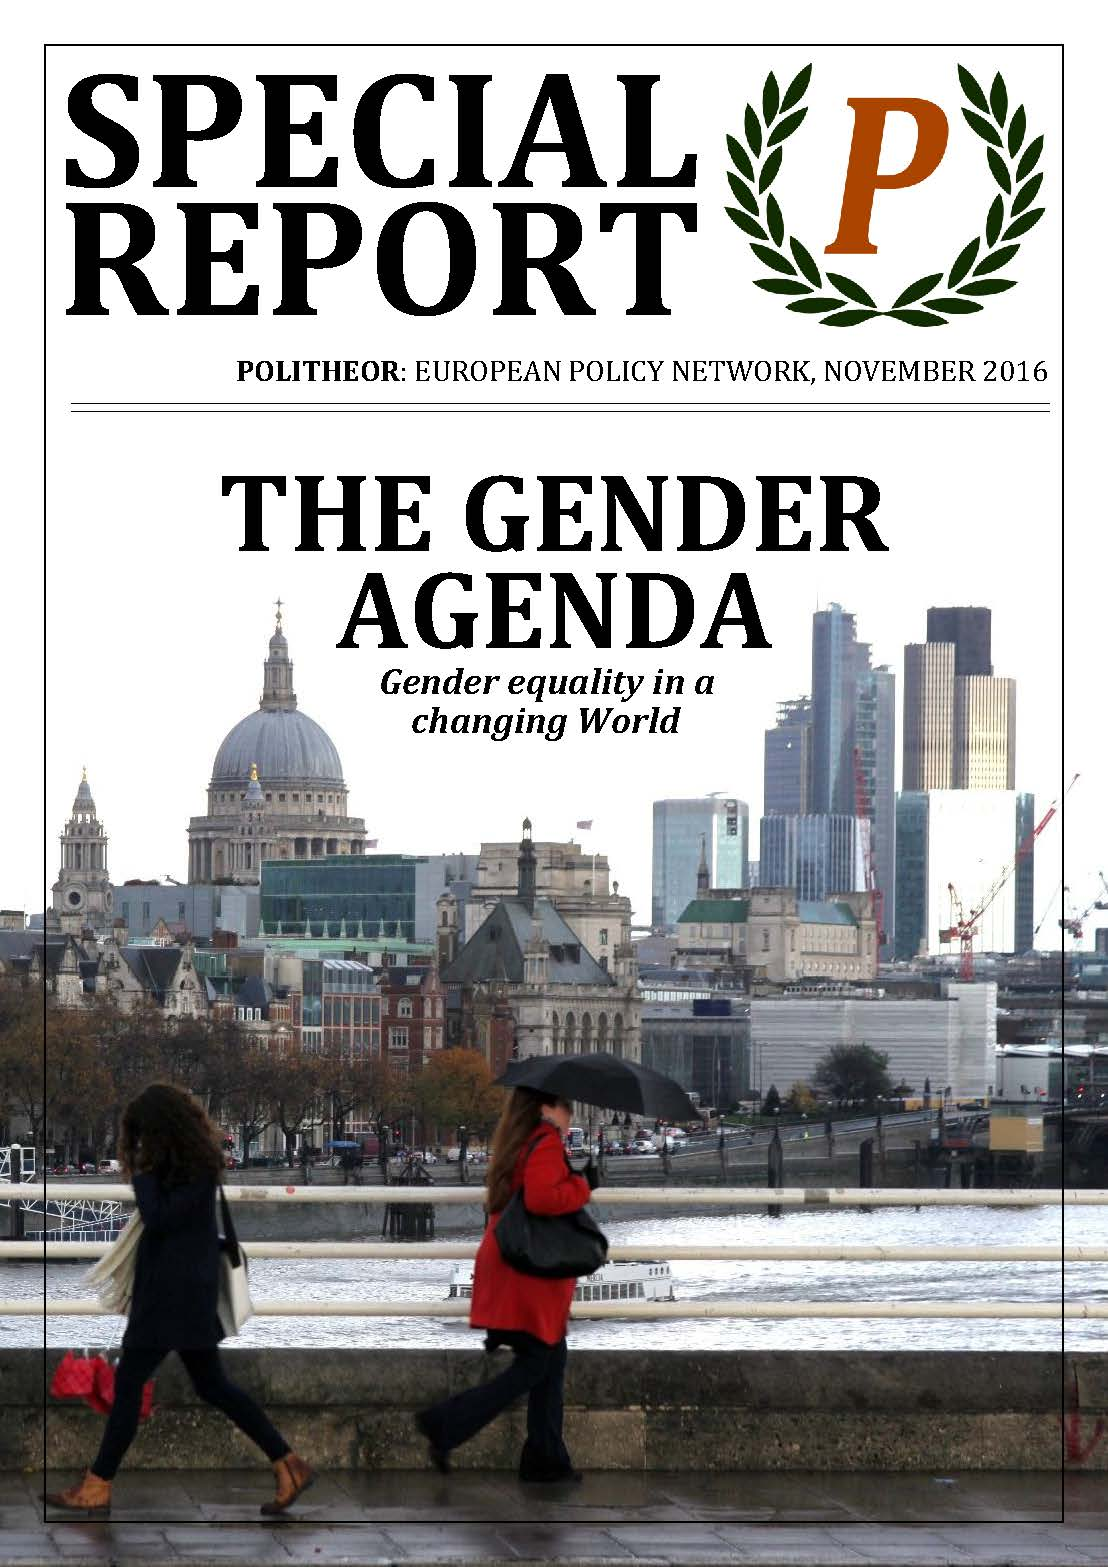 Politheor's Special Report: The Gender Agenda